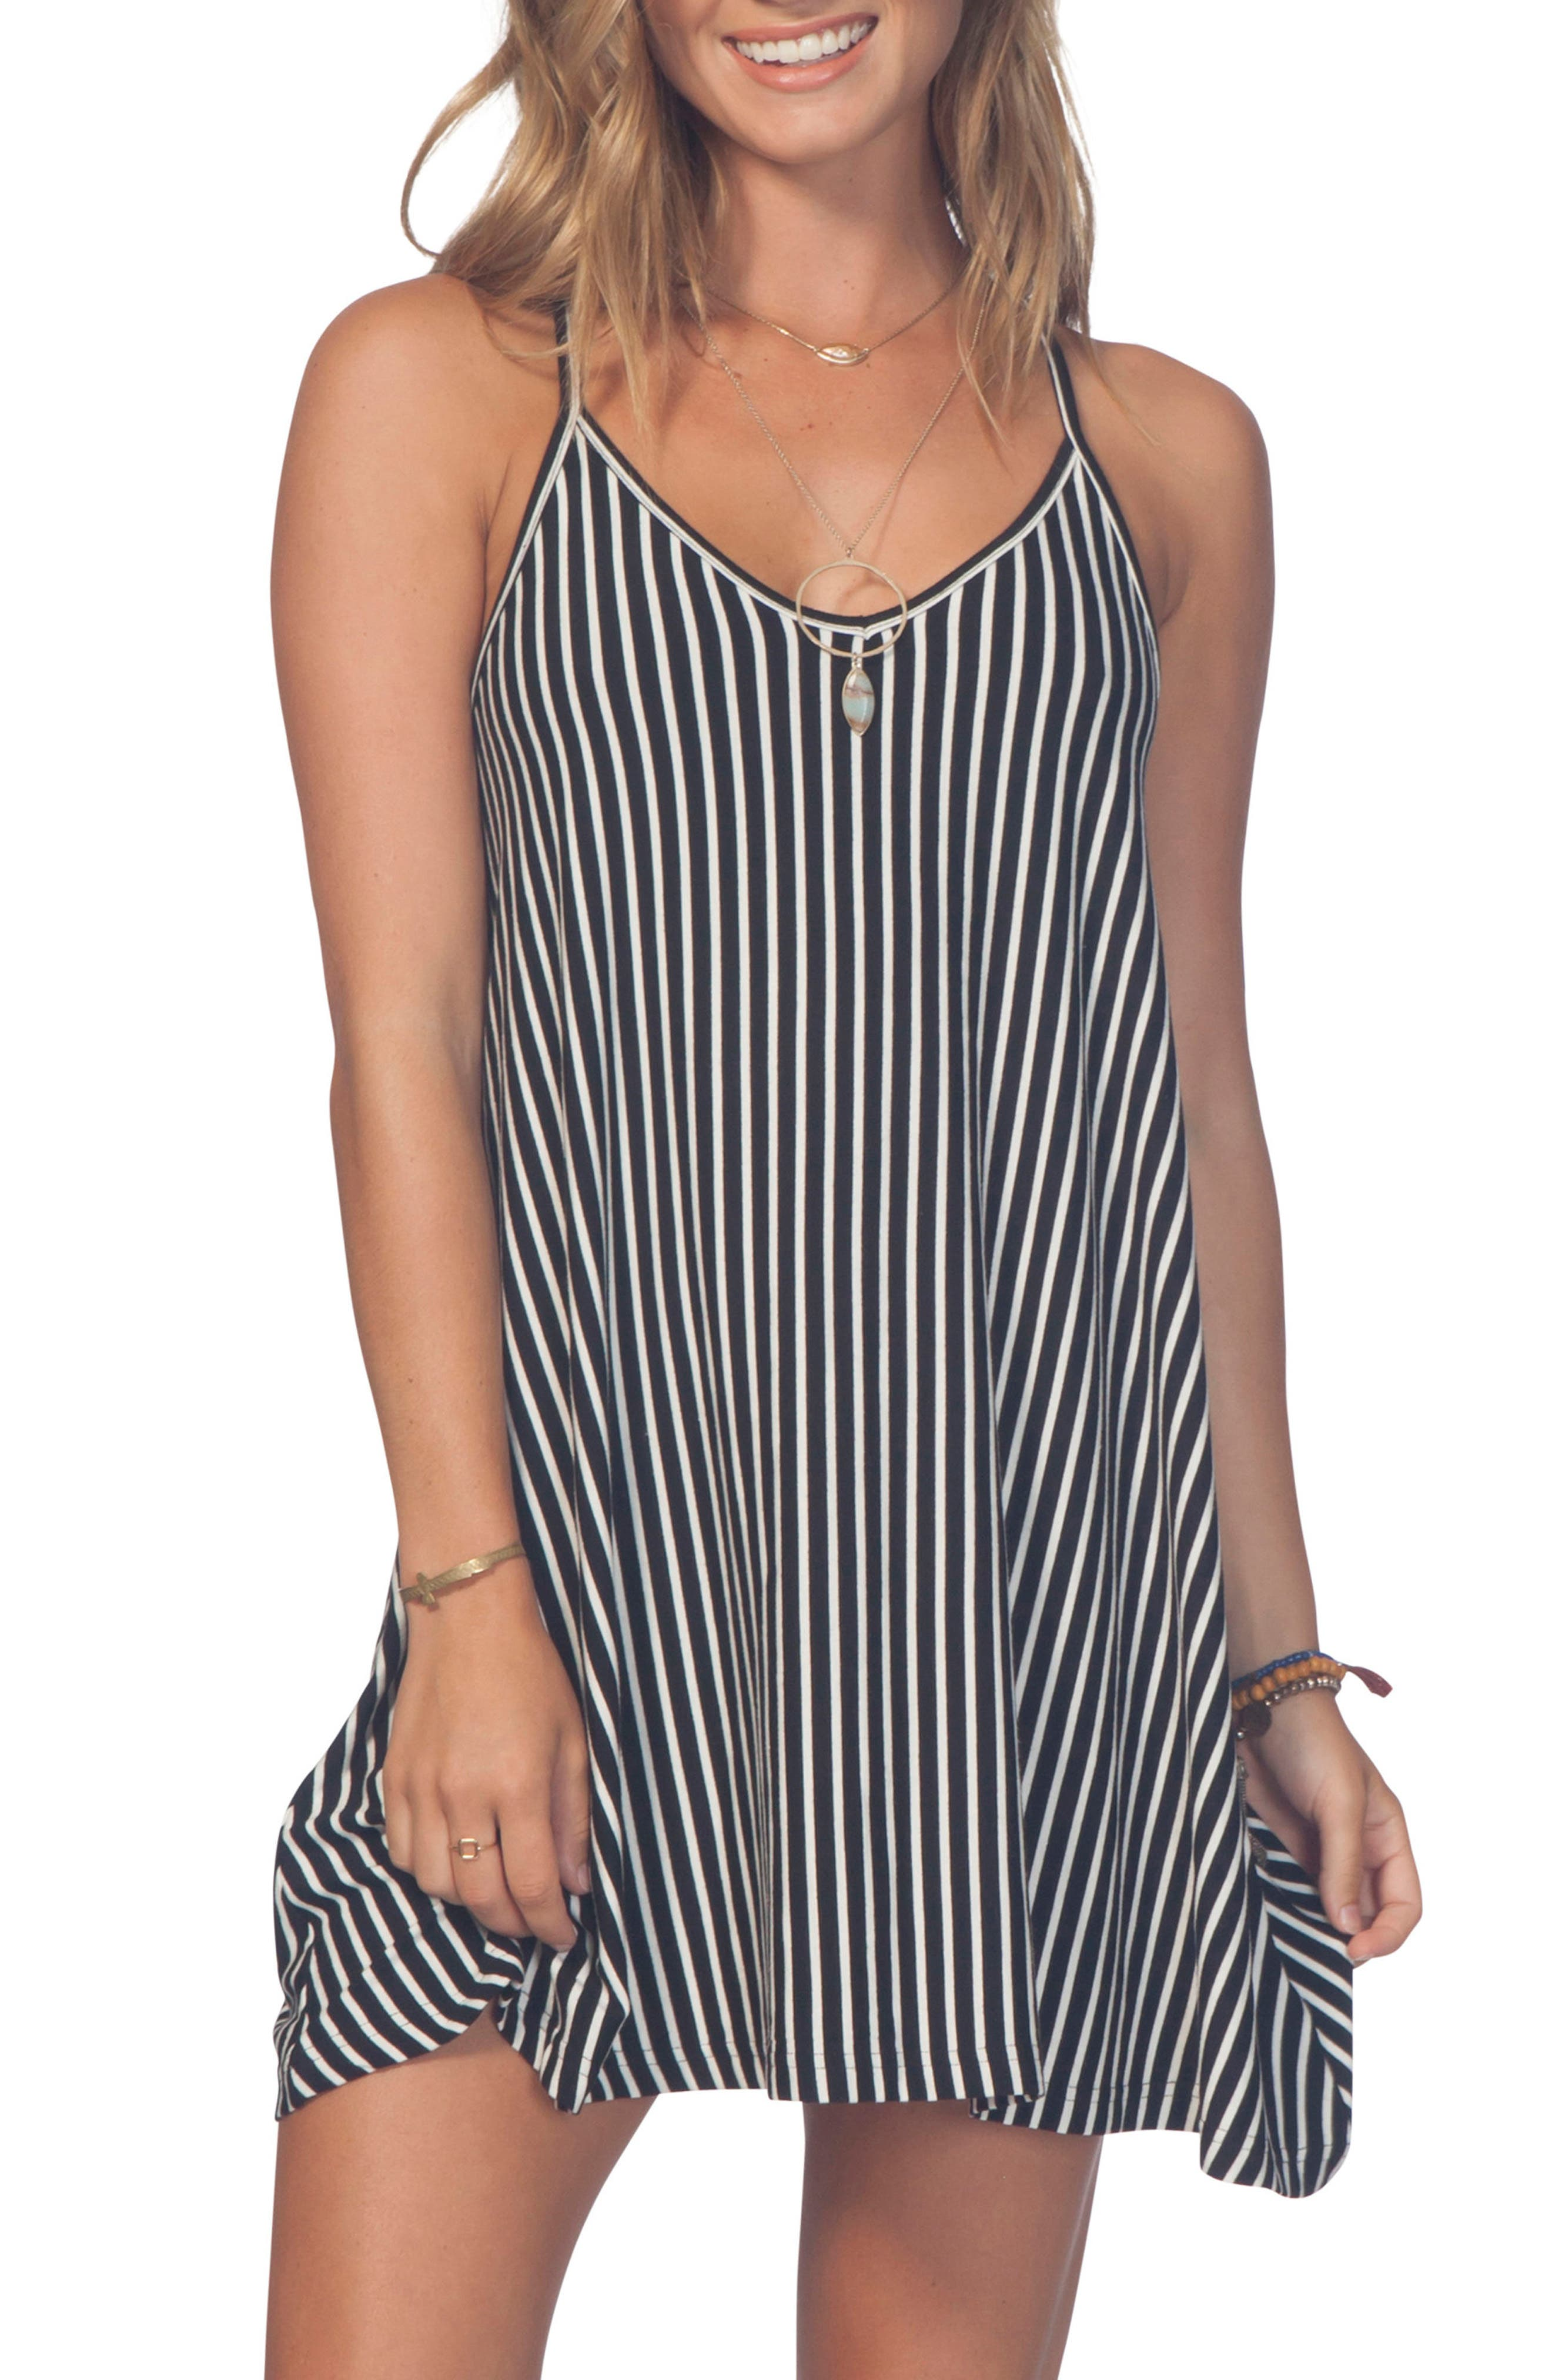 Day Tripper Strappy Swing Dress,                         Main,                         color, Black